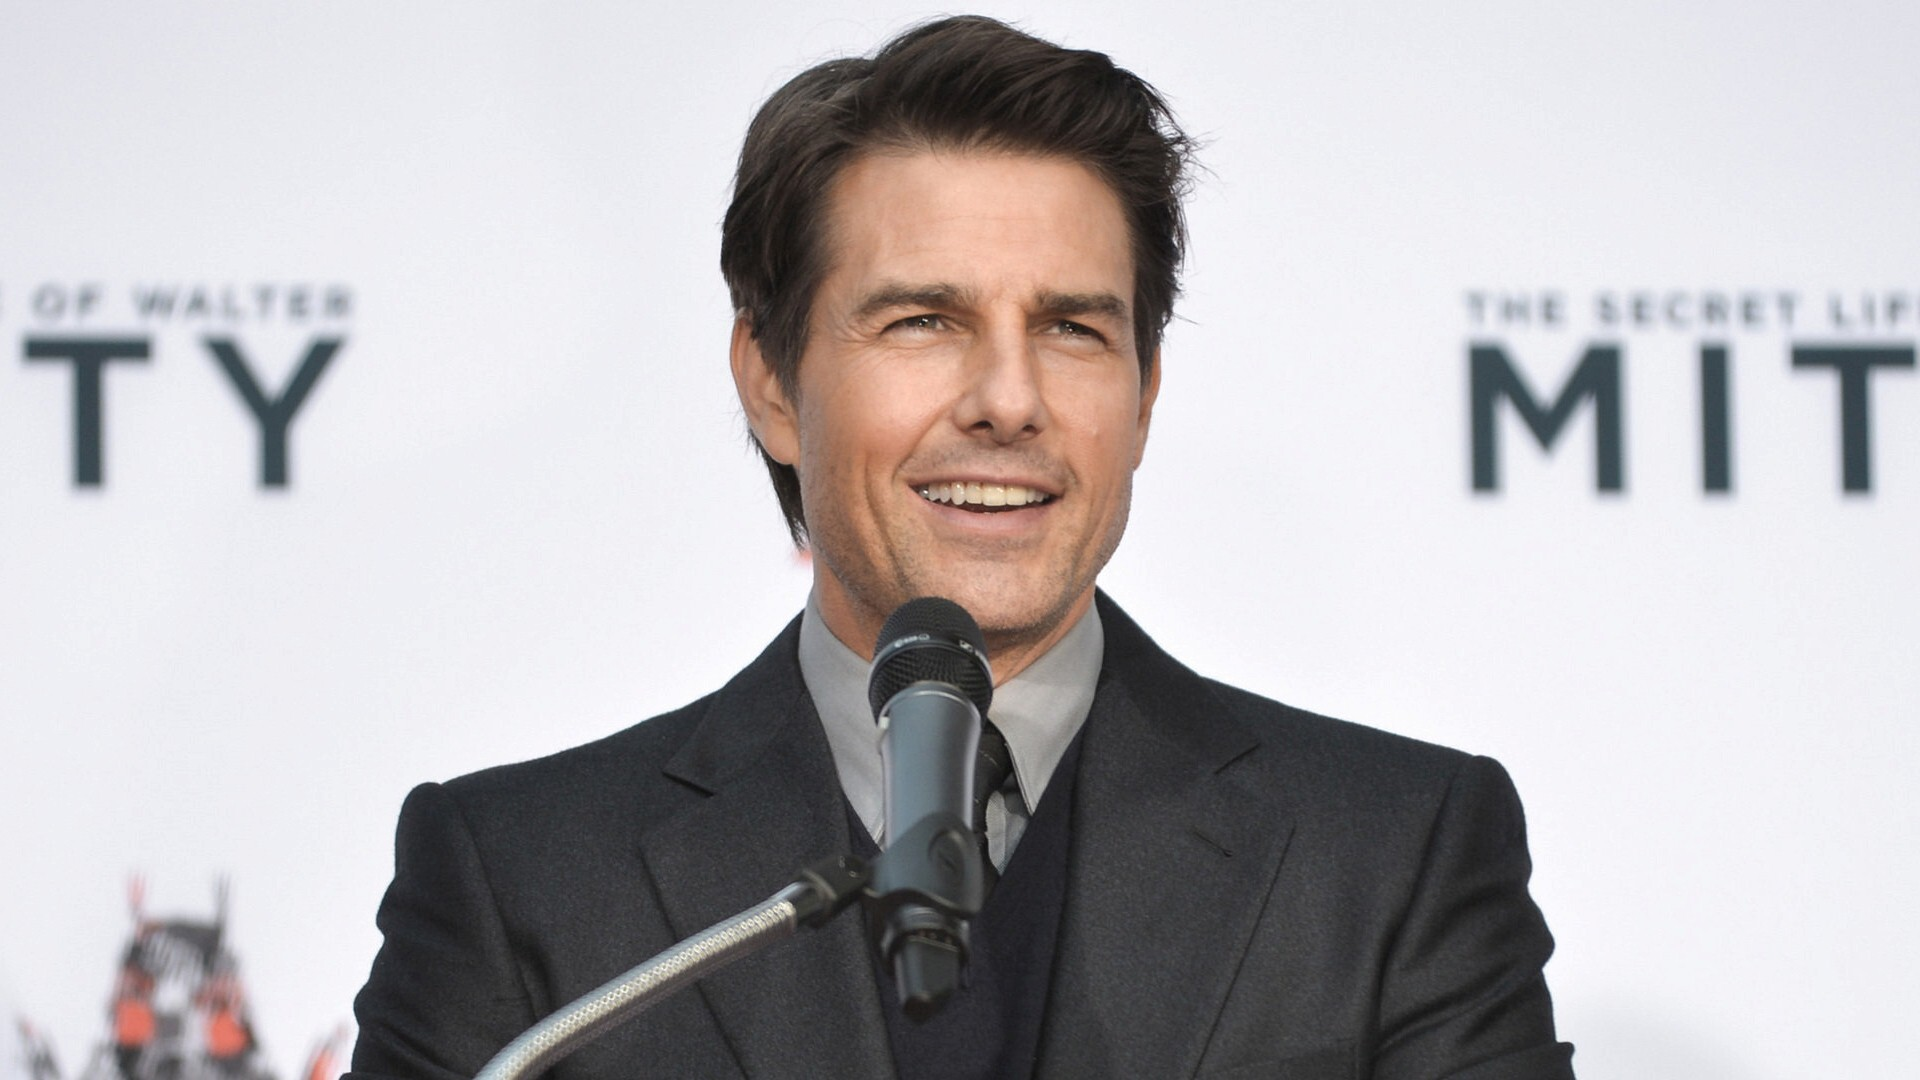 Tom Cruise Quotes 90 Wallpapers: Wallpaper Of Tom Cruise